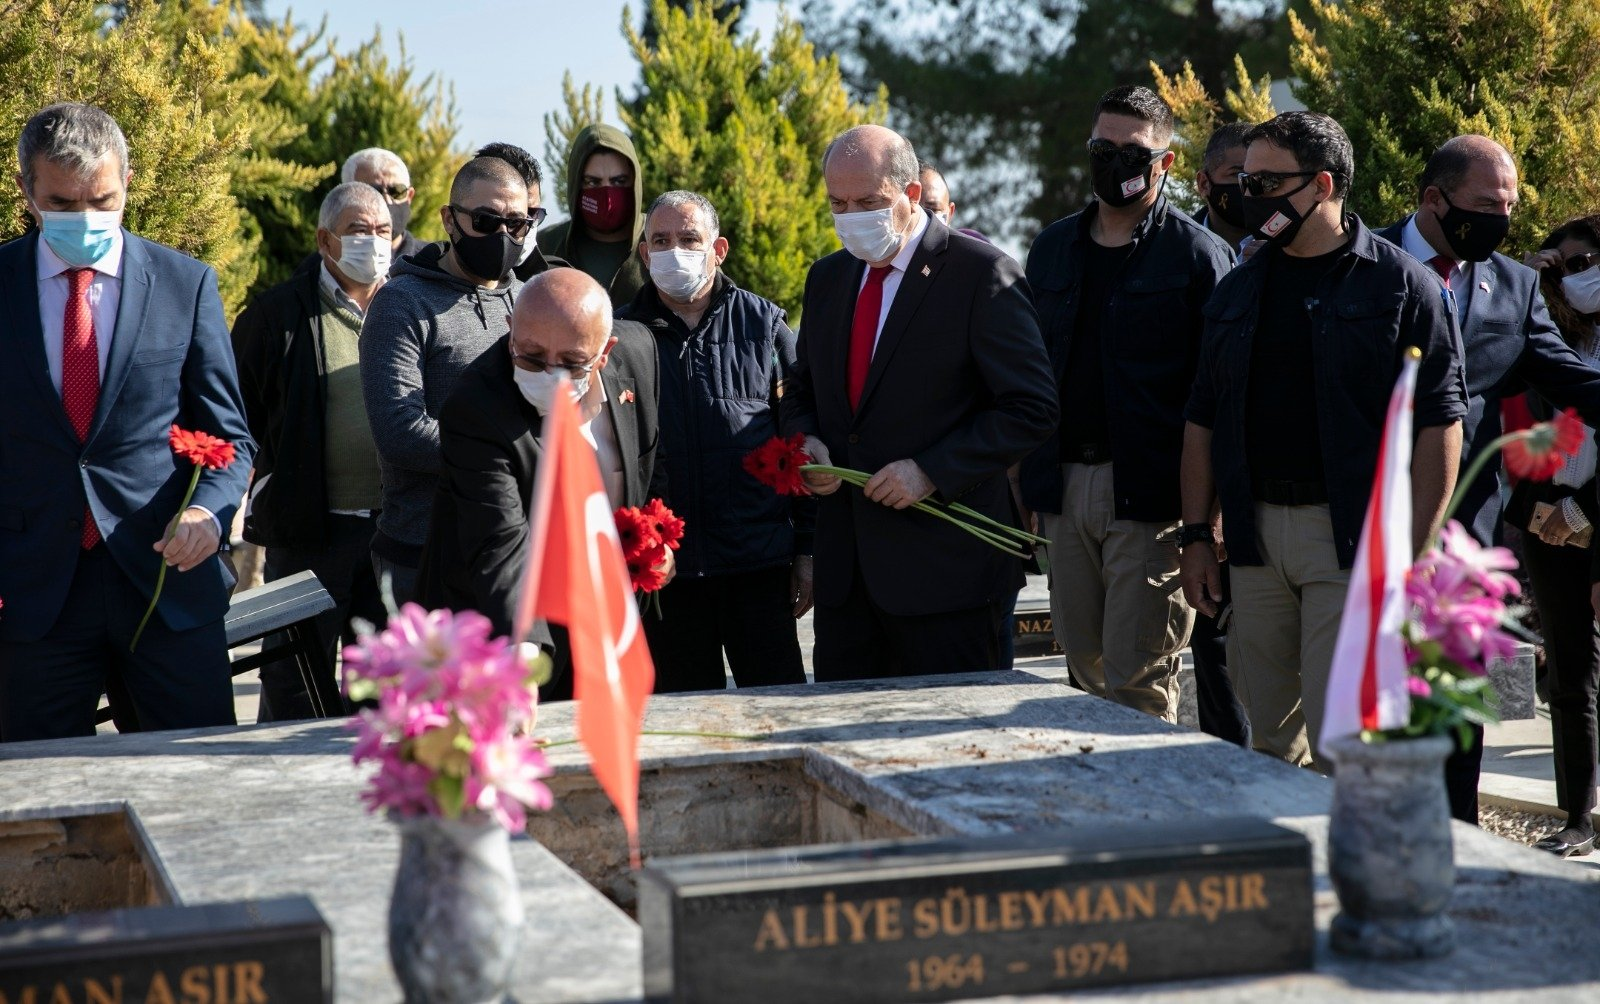 Fourteen children killed by a Greek terrorist group in 1974 were buried in a ceremony attended by Turkish Republic of Northern Cyprus (TRNC) President Ersin Tatar, Dec. 26, 2020. (AA Photo)